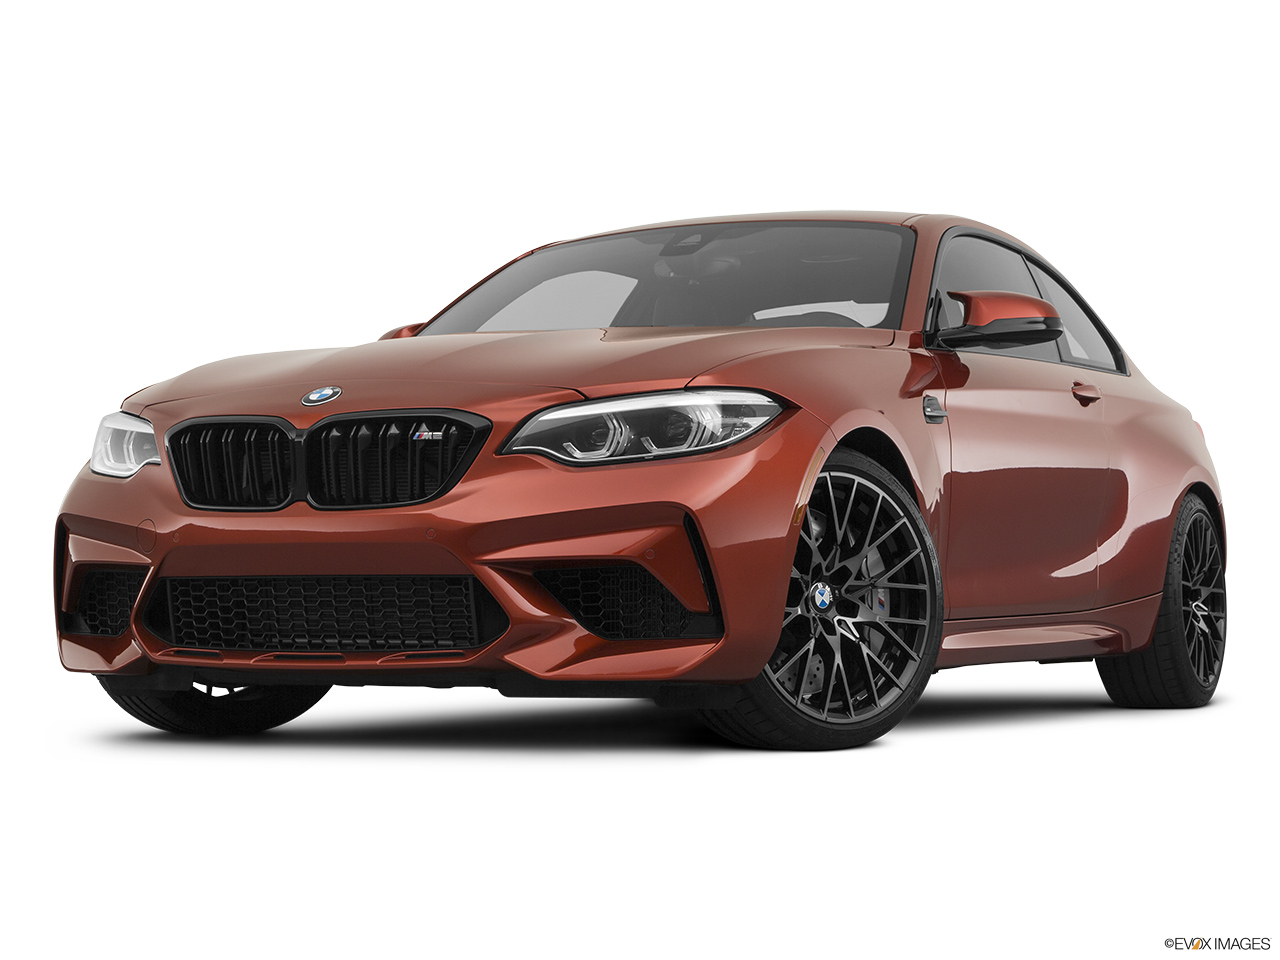 2020 BMW M2 Competition Front angle view, low wide perspective.